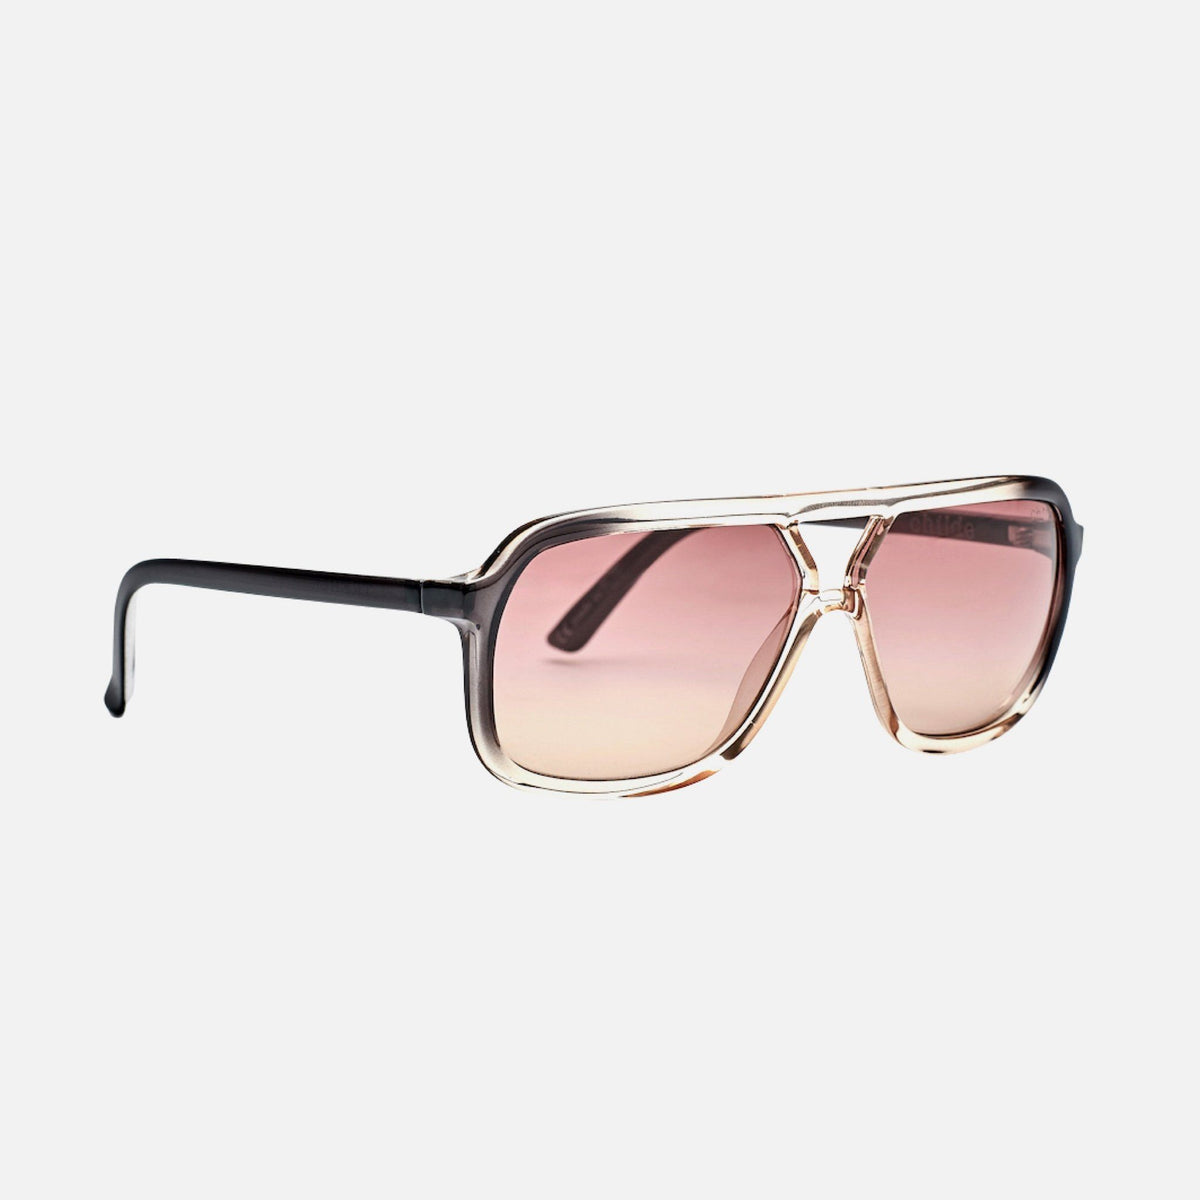 TREBLE Gloss Black Fade to Translucent Rose | Rose Vital Gradient Lens